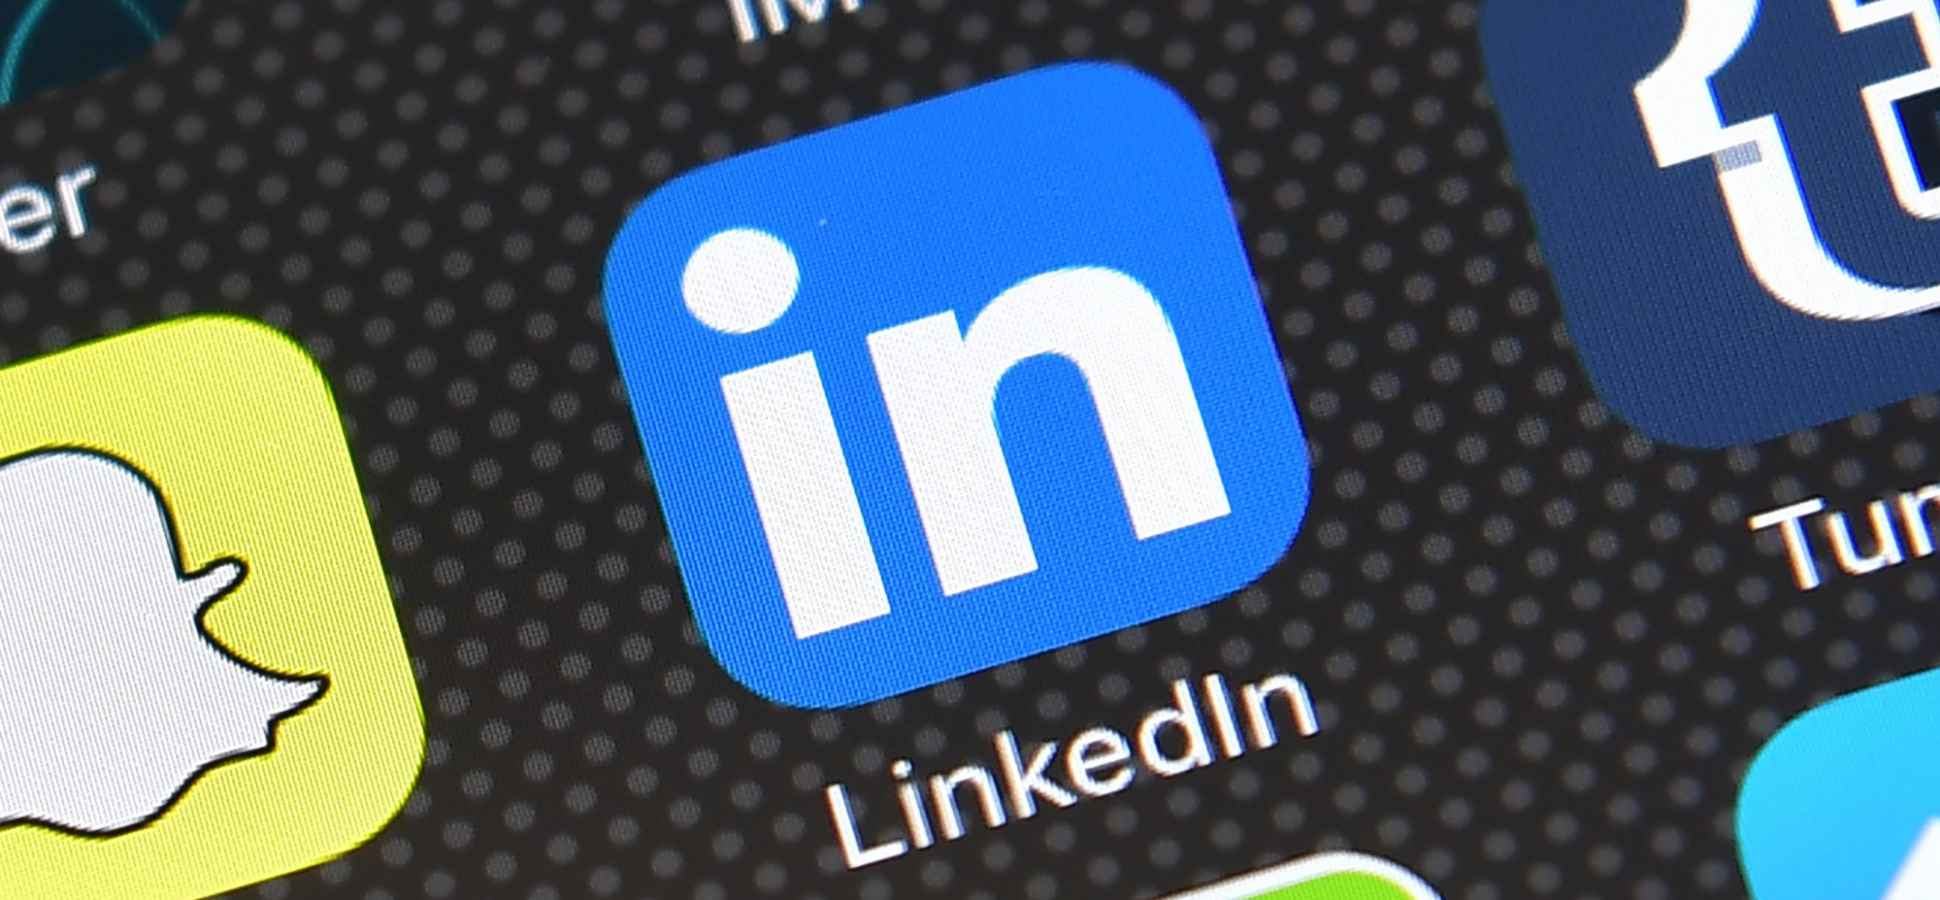 Want More Readers for Your LinkedIn Articles? Stop Making These 8 Simple Mistakes